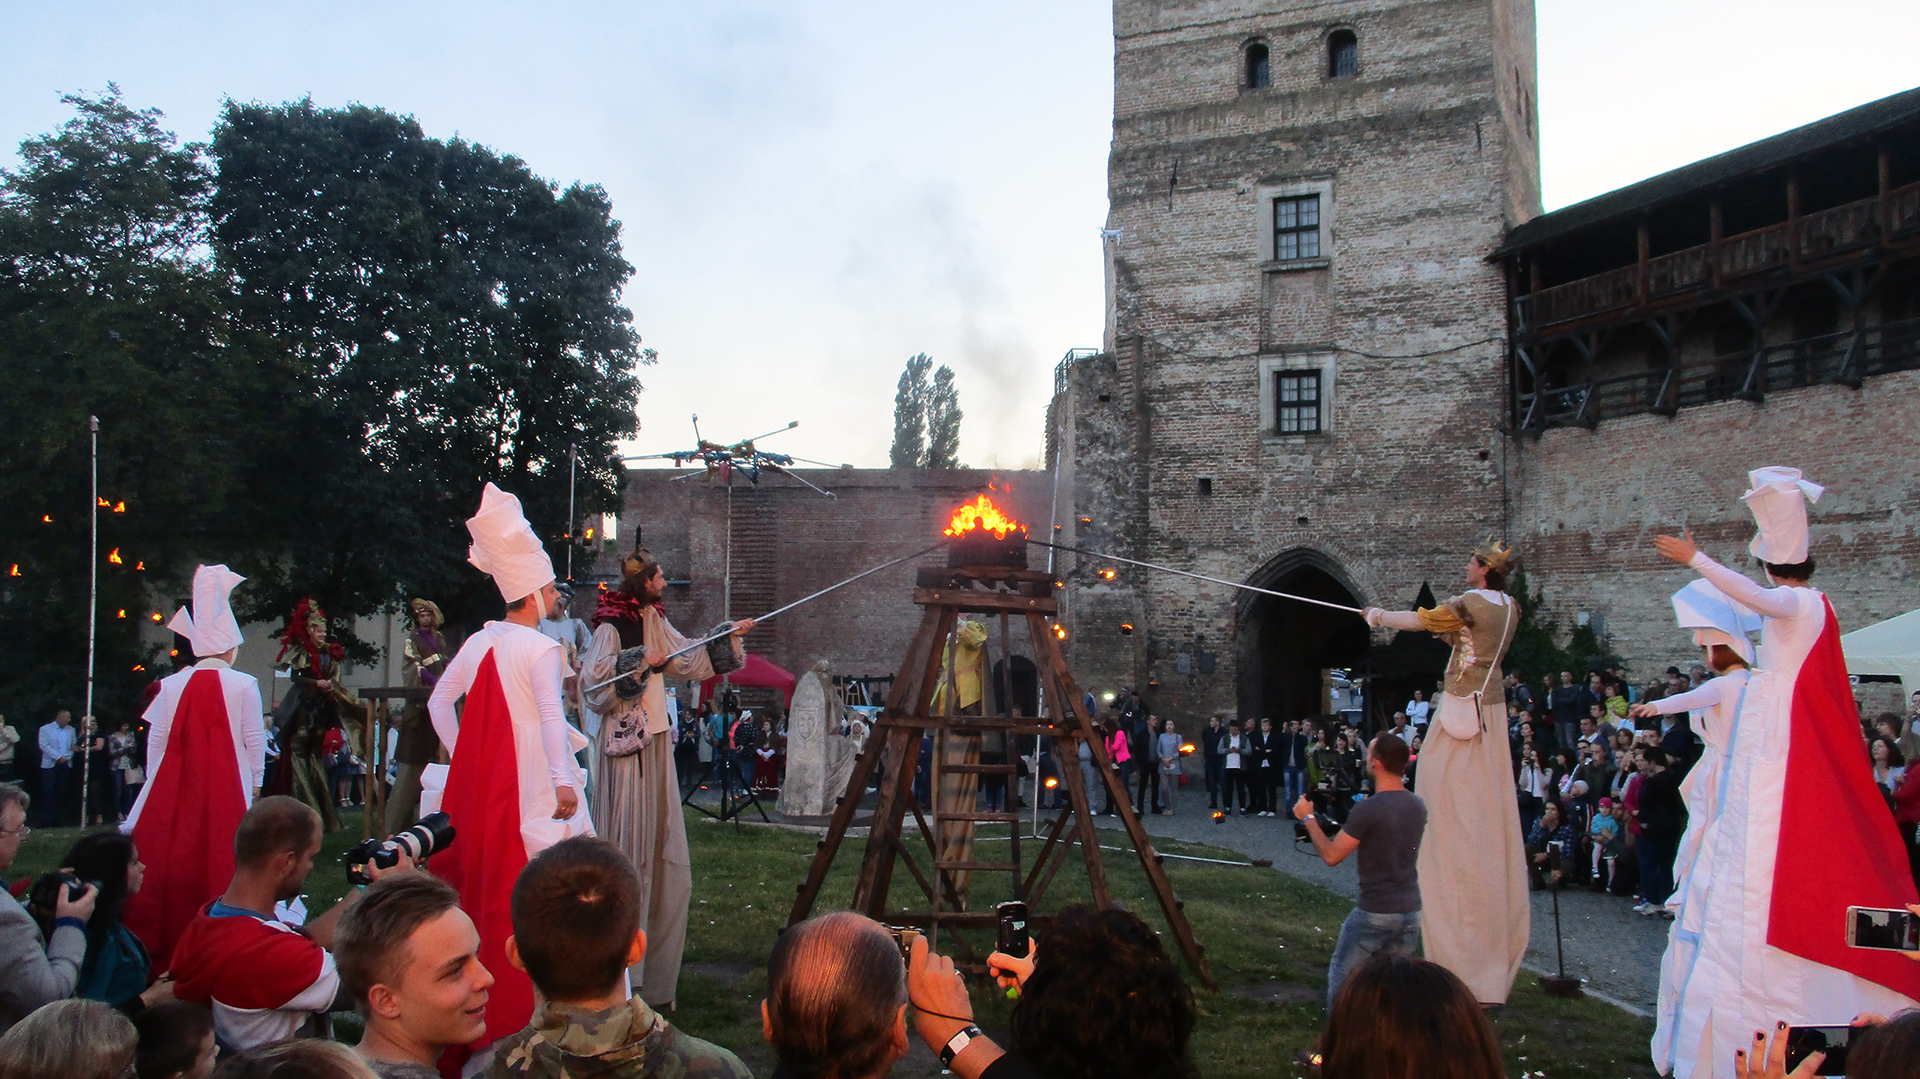 file:night in lutsk castle 2017 - opening ceremony - wikimedia